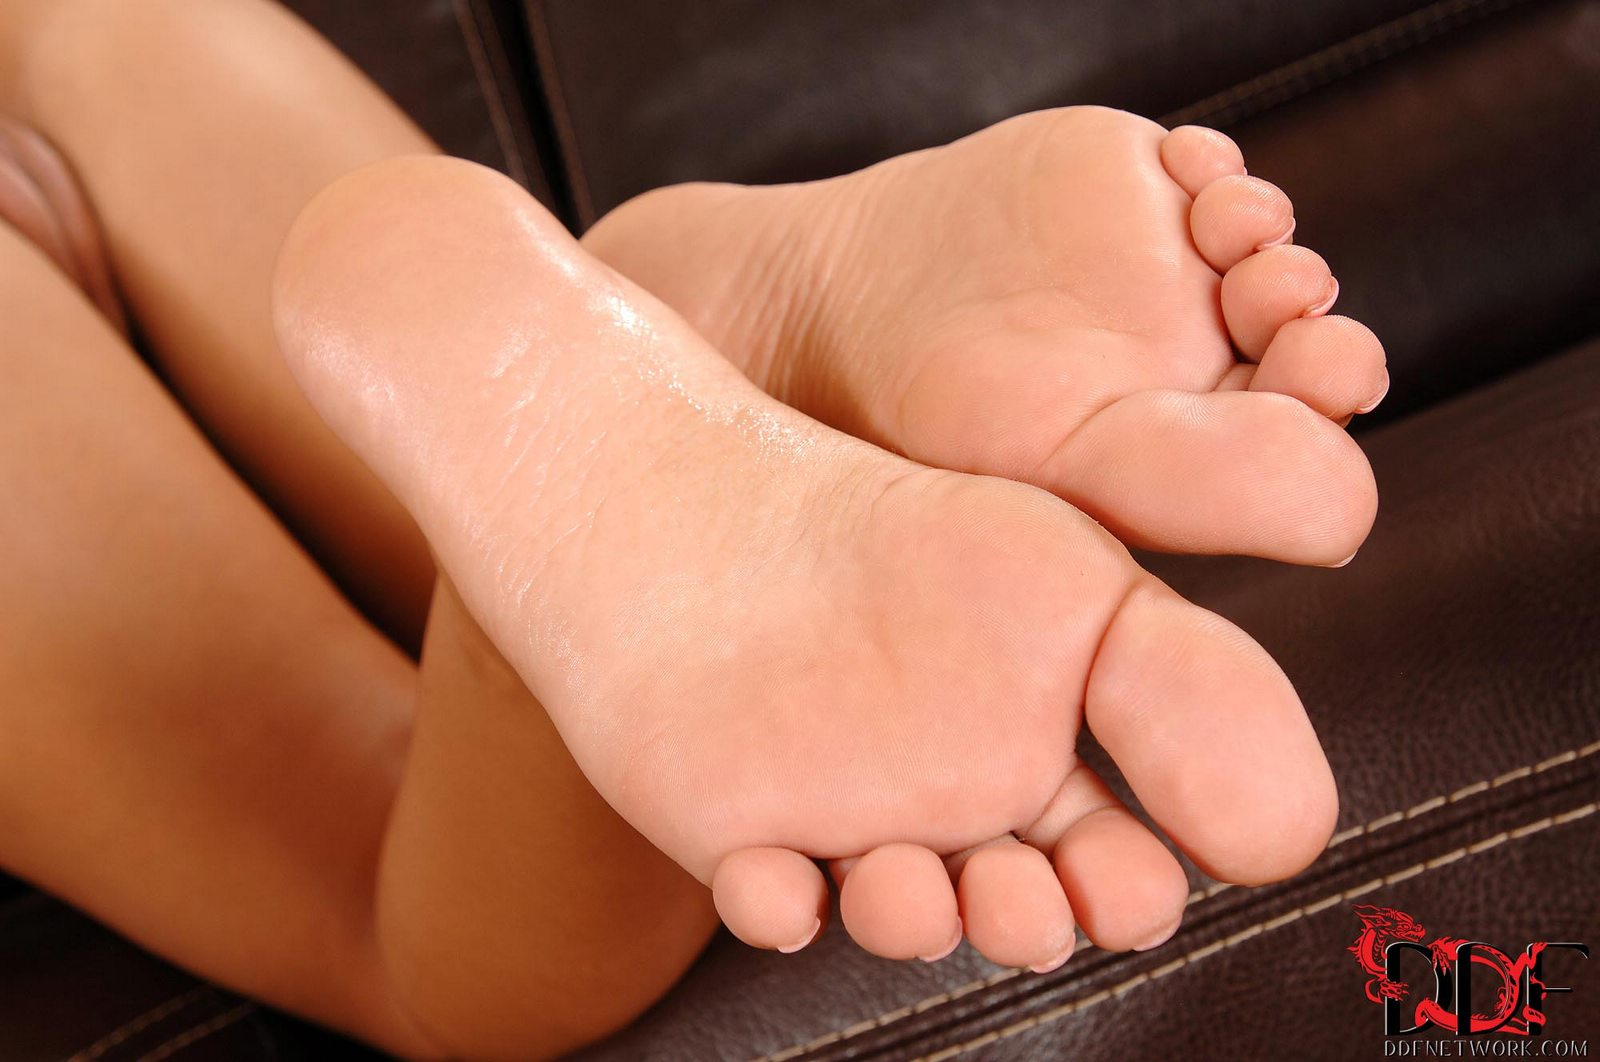 Worship our feet or lose your job 7